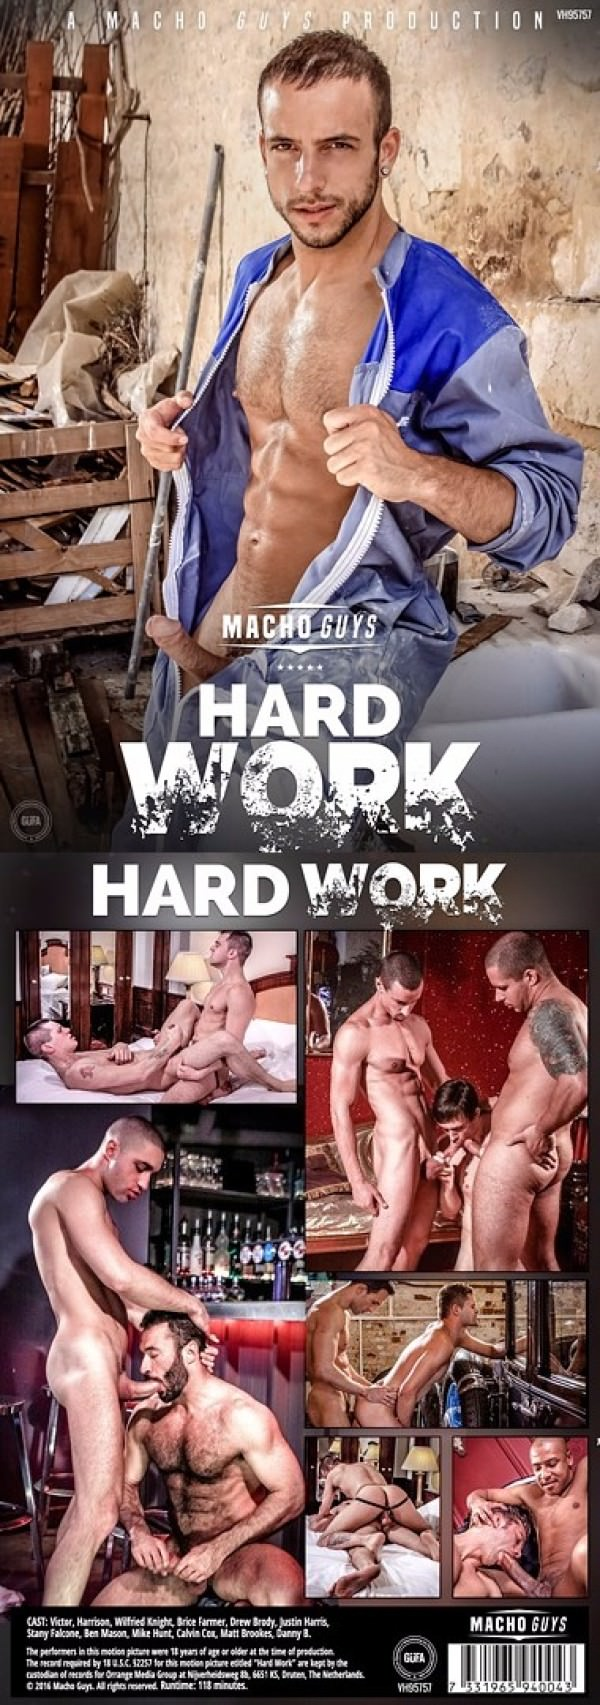 MachoGuys Hard Work DVD